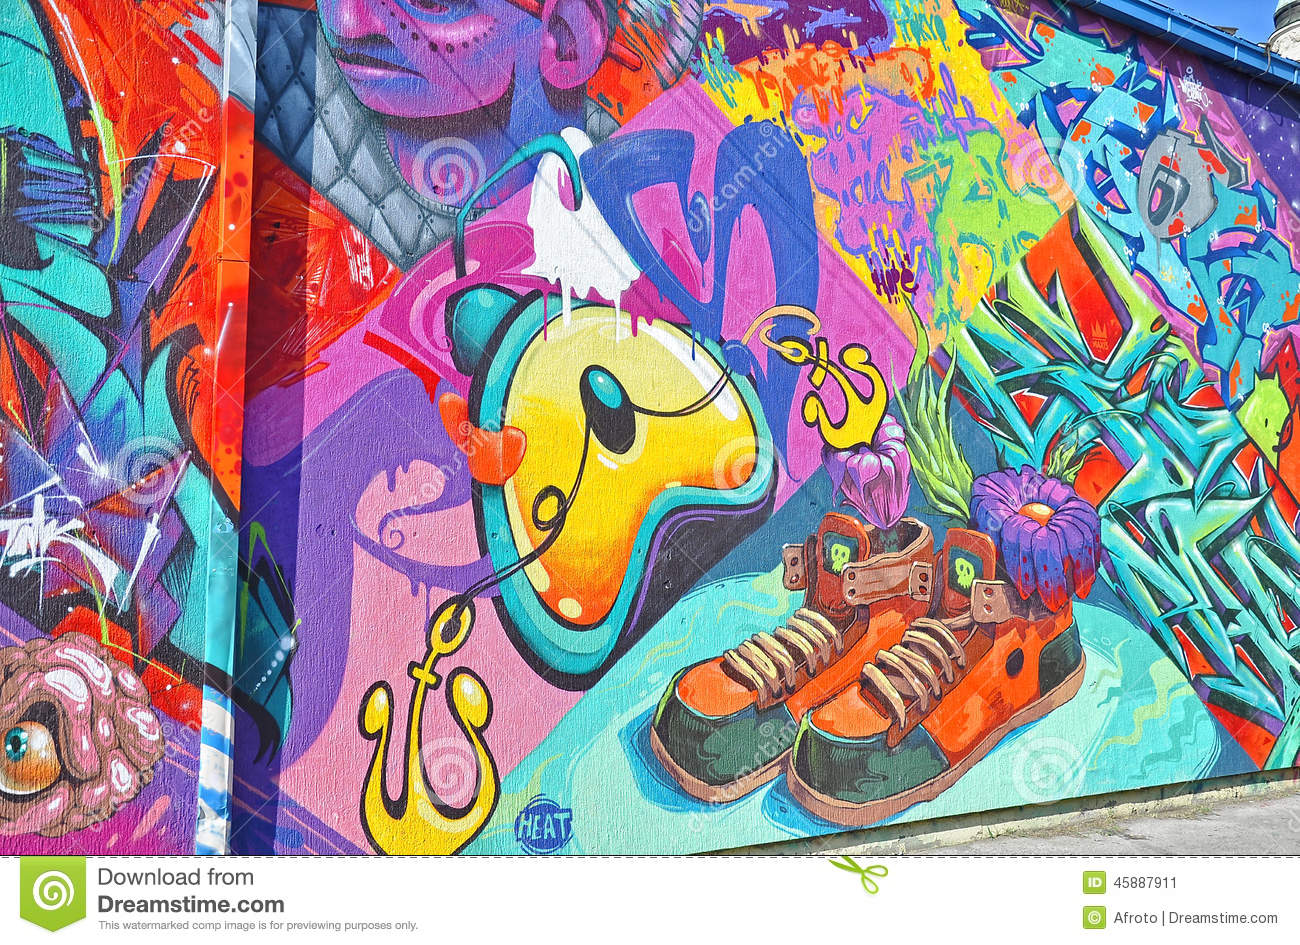 Colorful graffiti